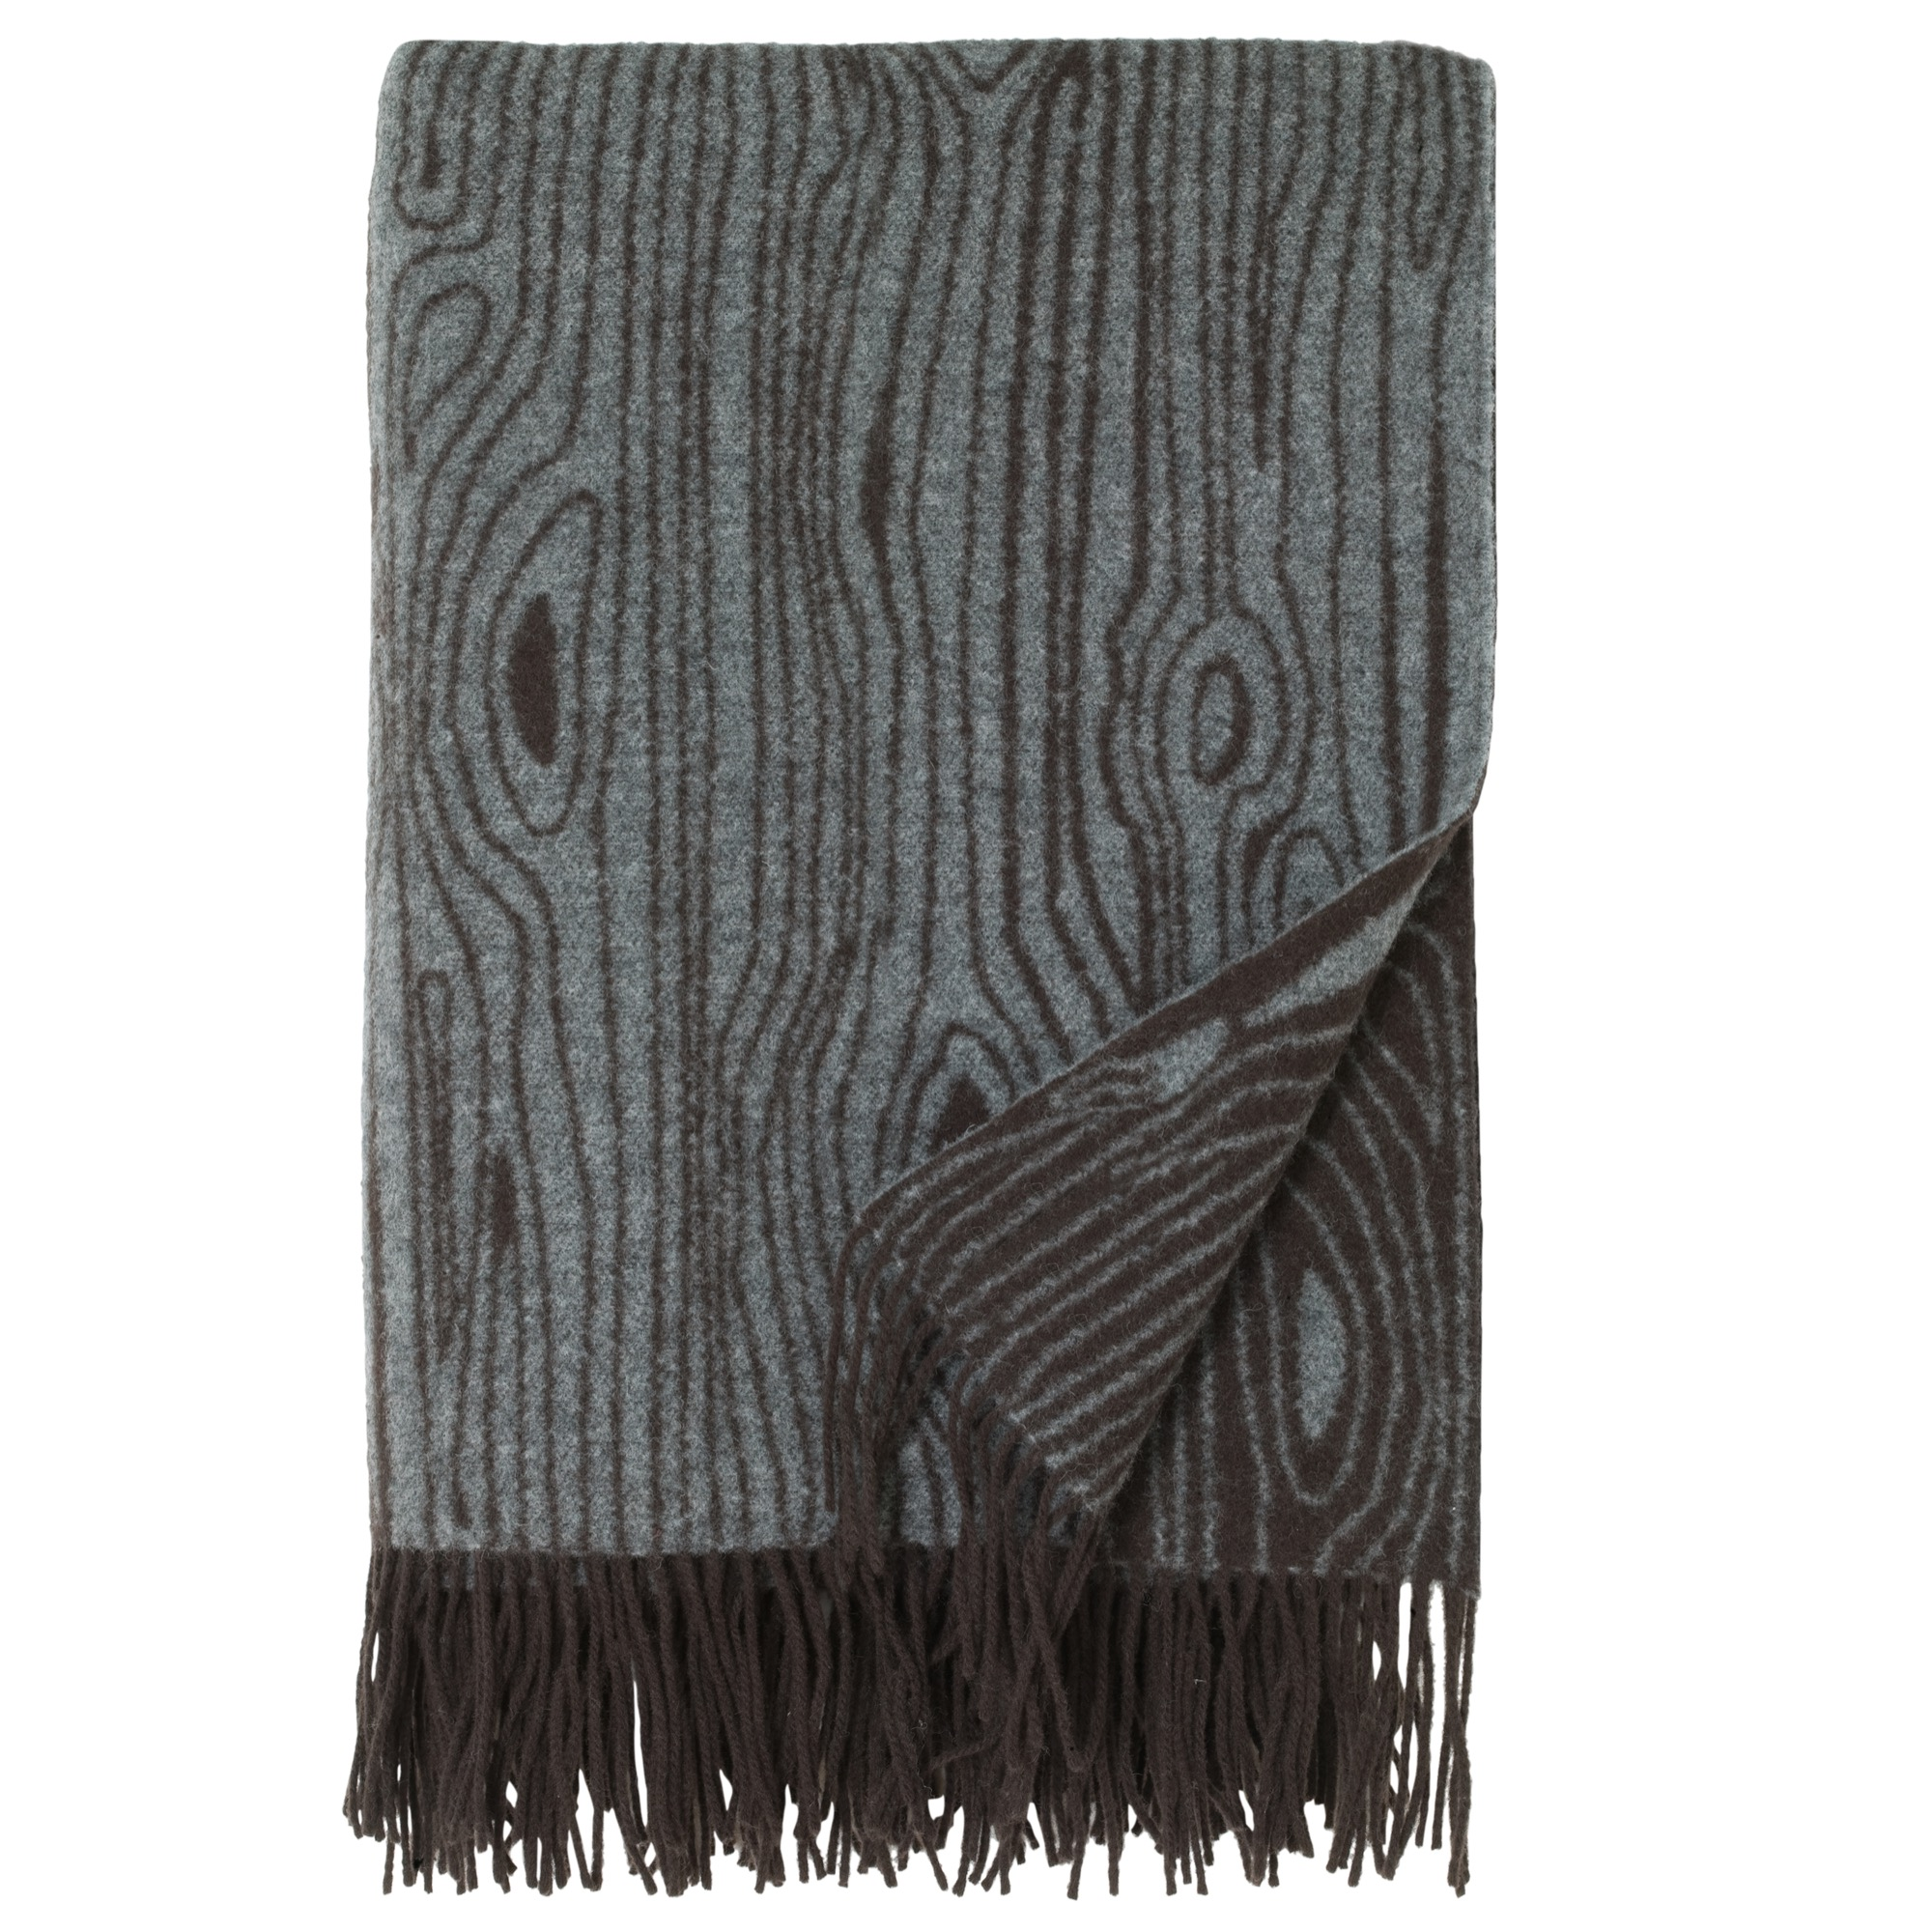 Woolywood throw by Donna Wilson